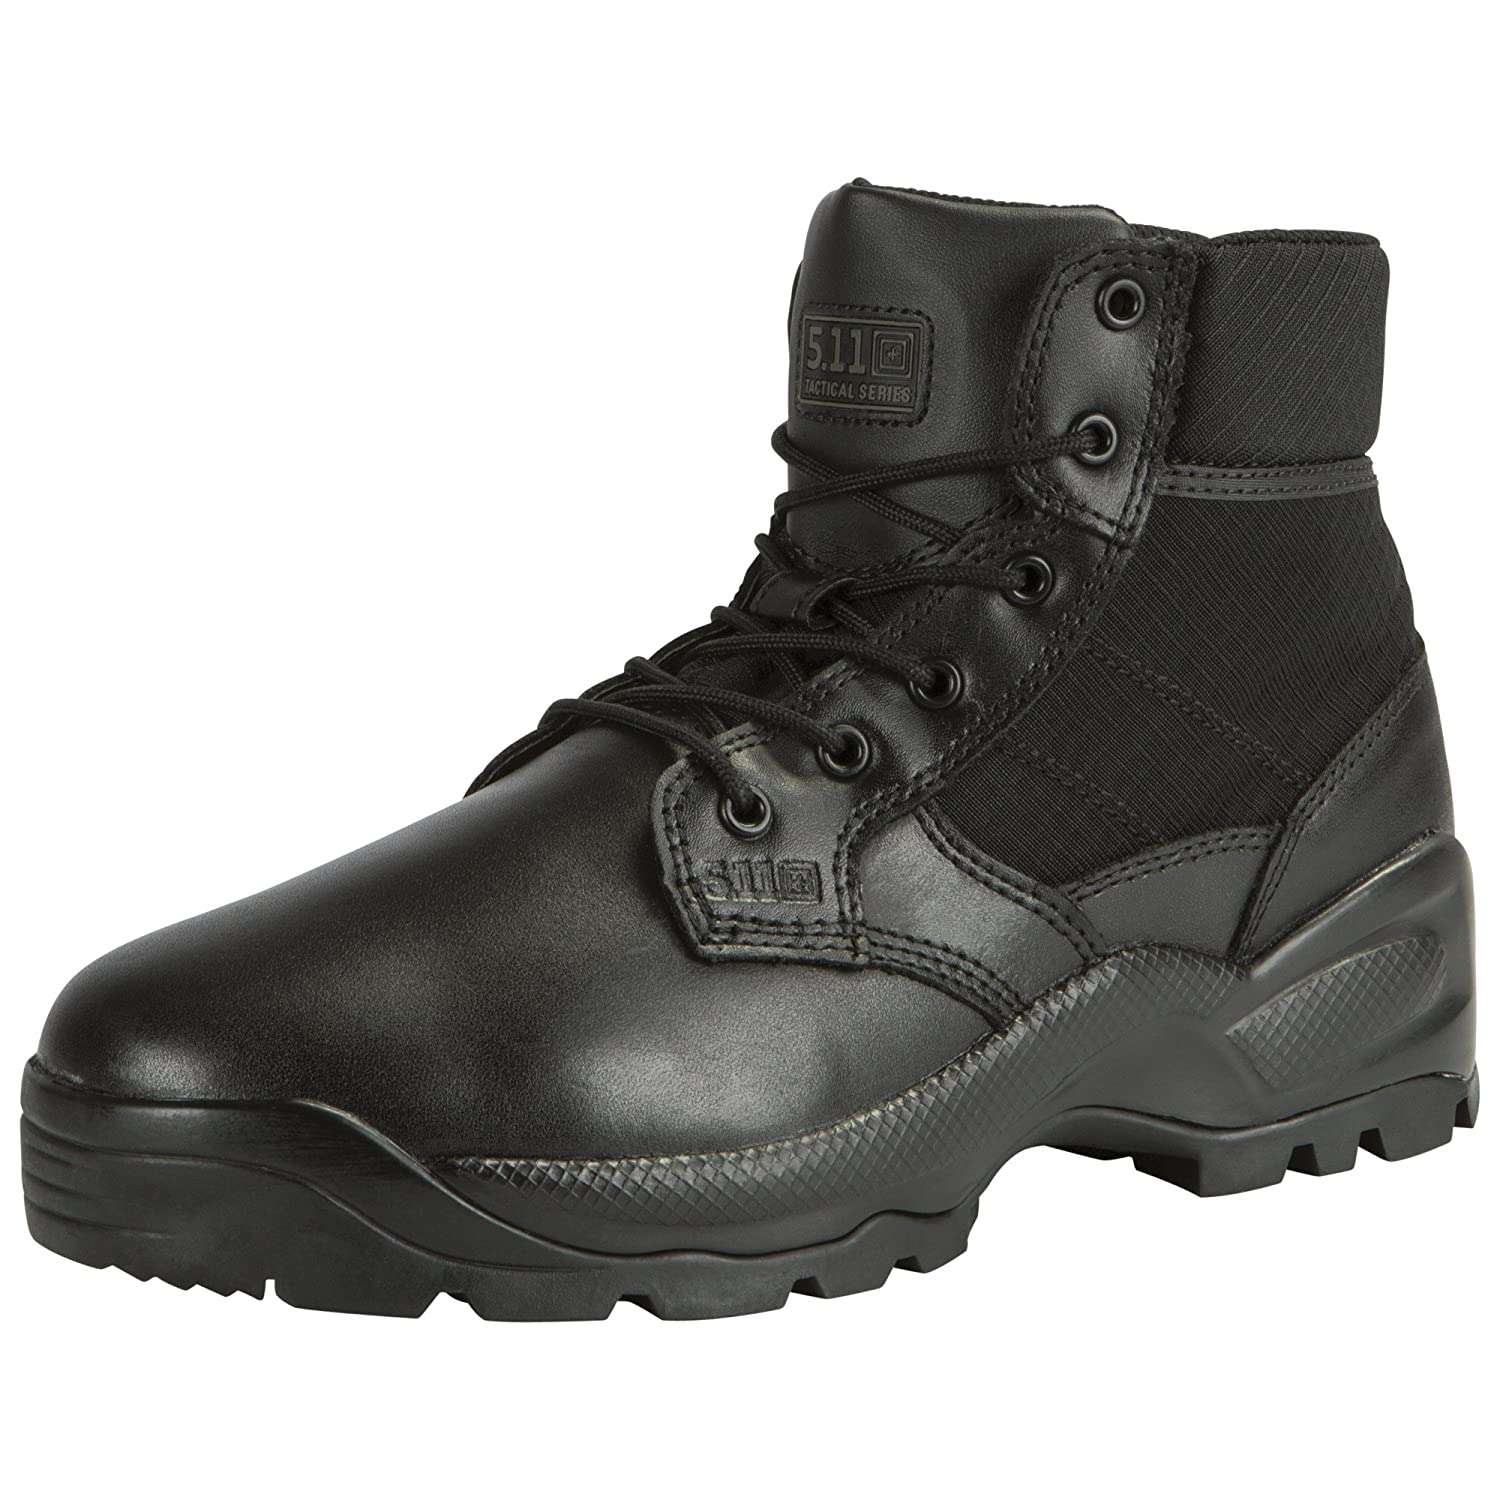 5.11 Tactical Men's Speed 2.0 5 Inch Tactical Boot,Black,12 D US